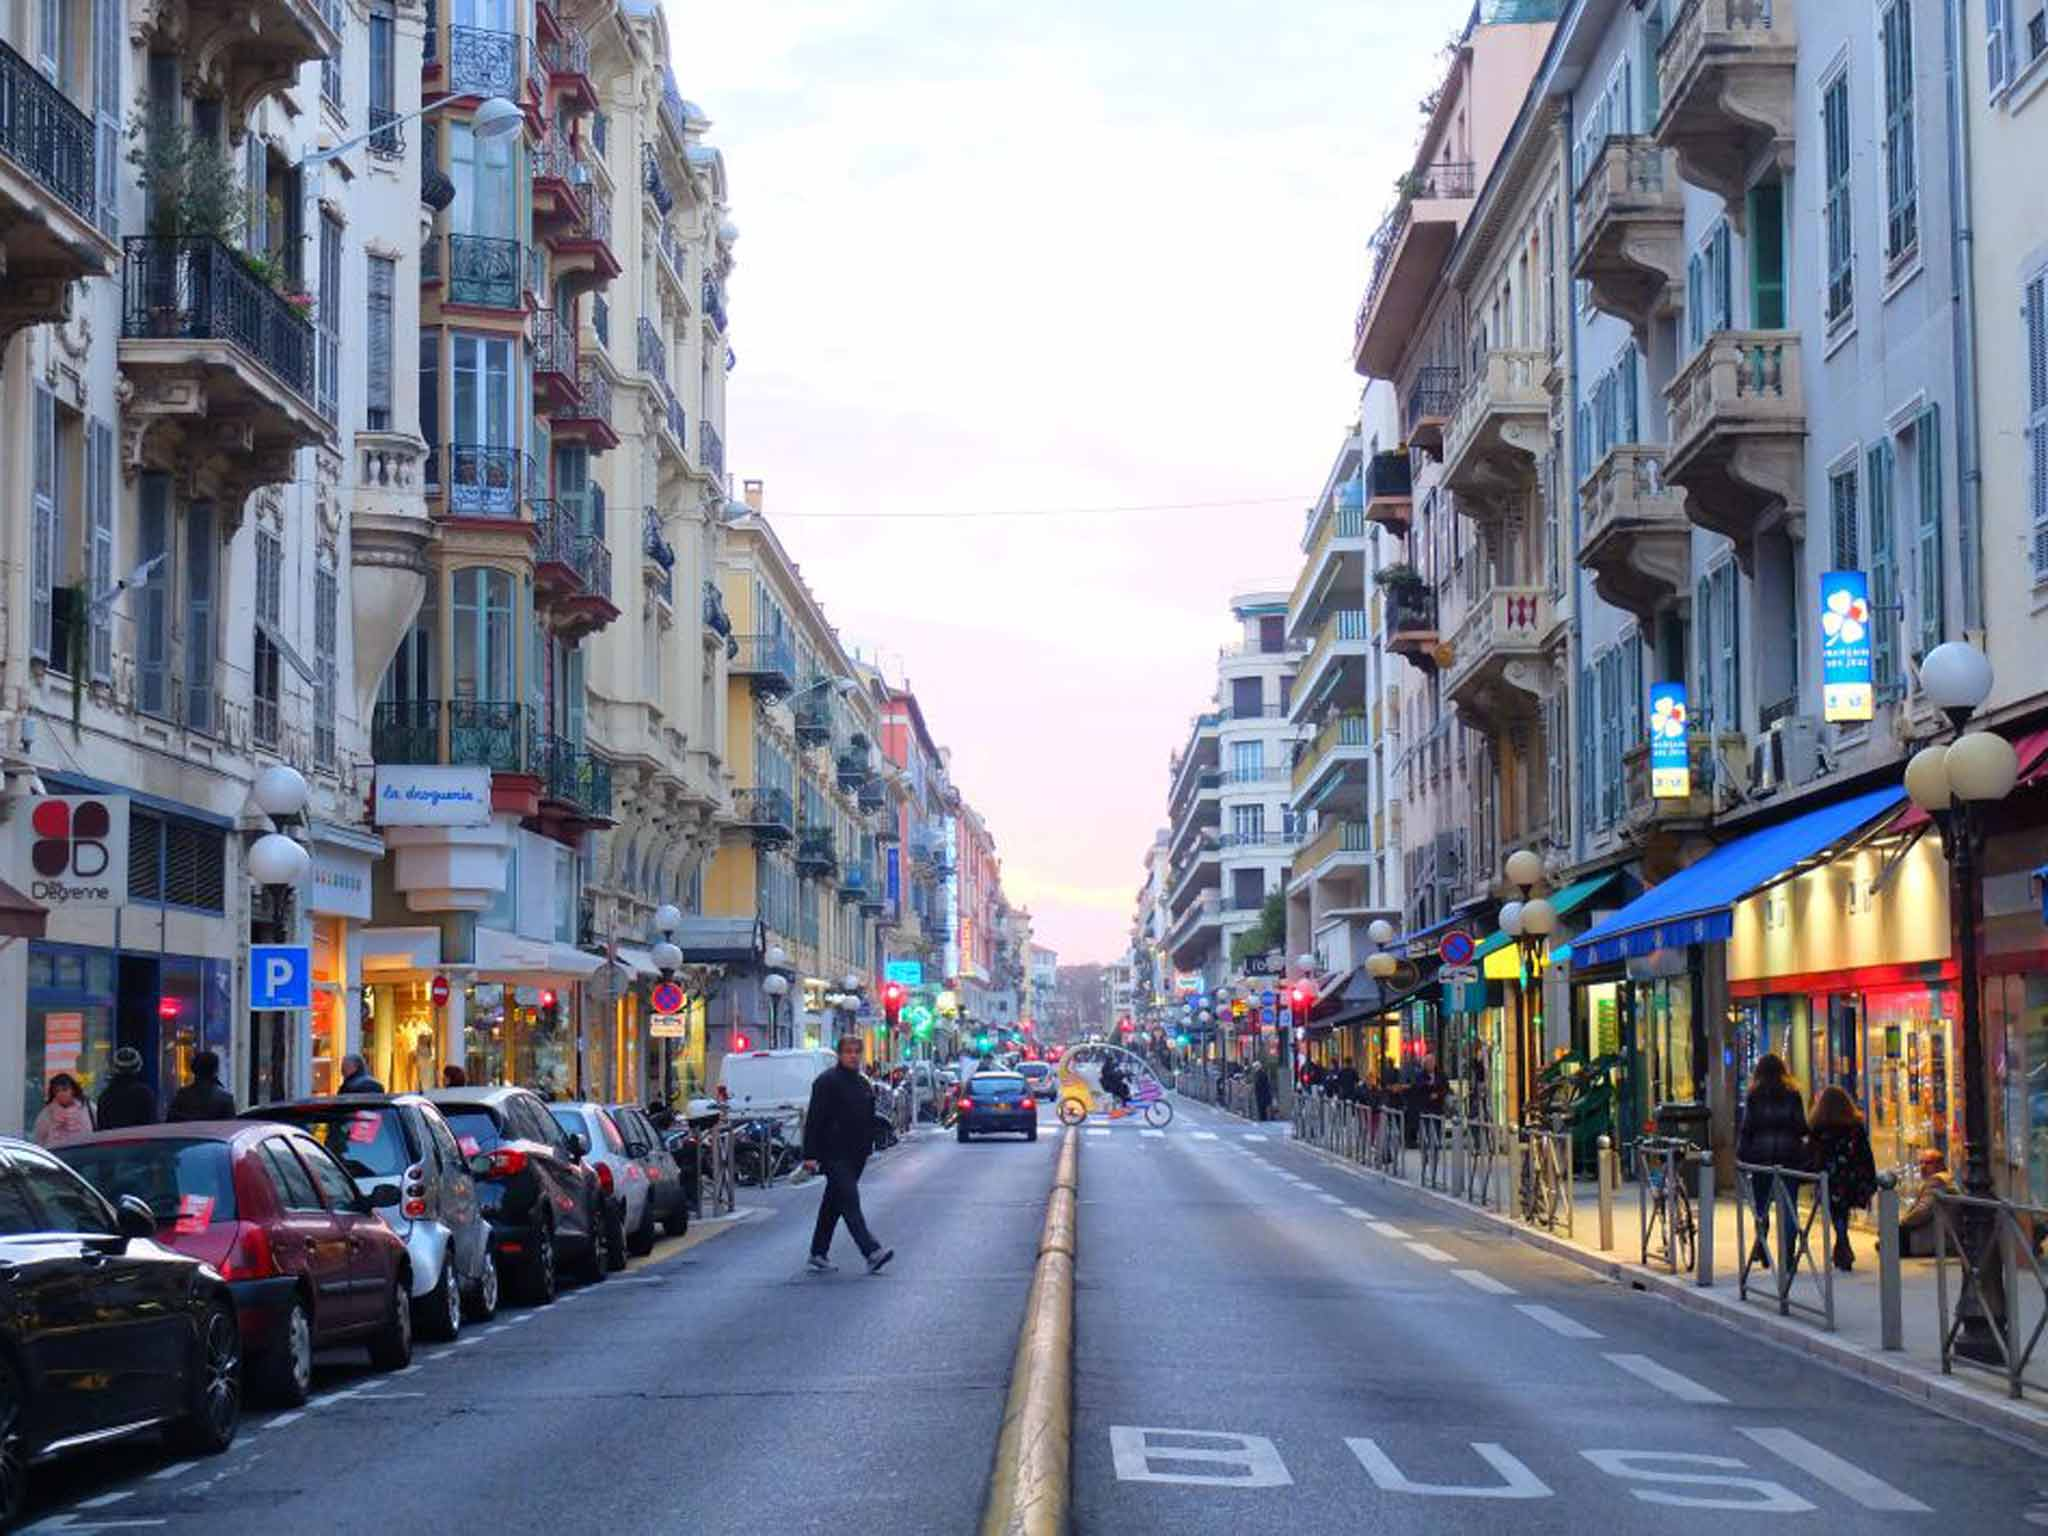 Nice travel tips: Where to go and what to see in 48 hours